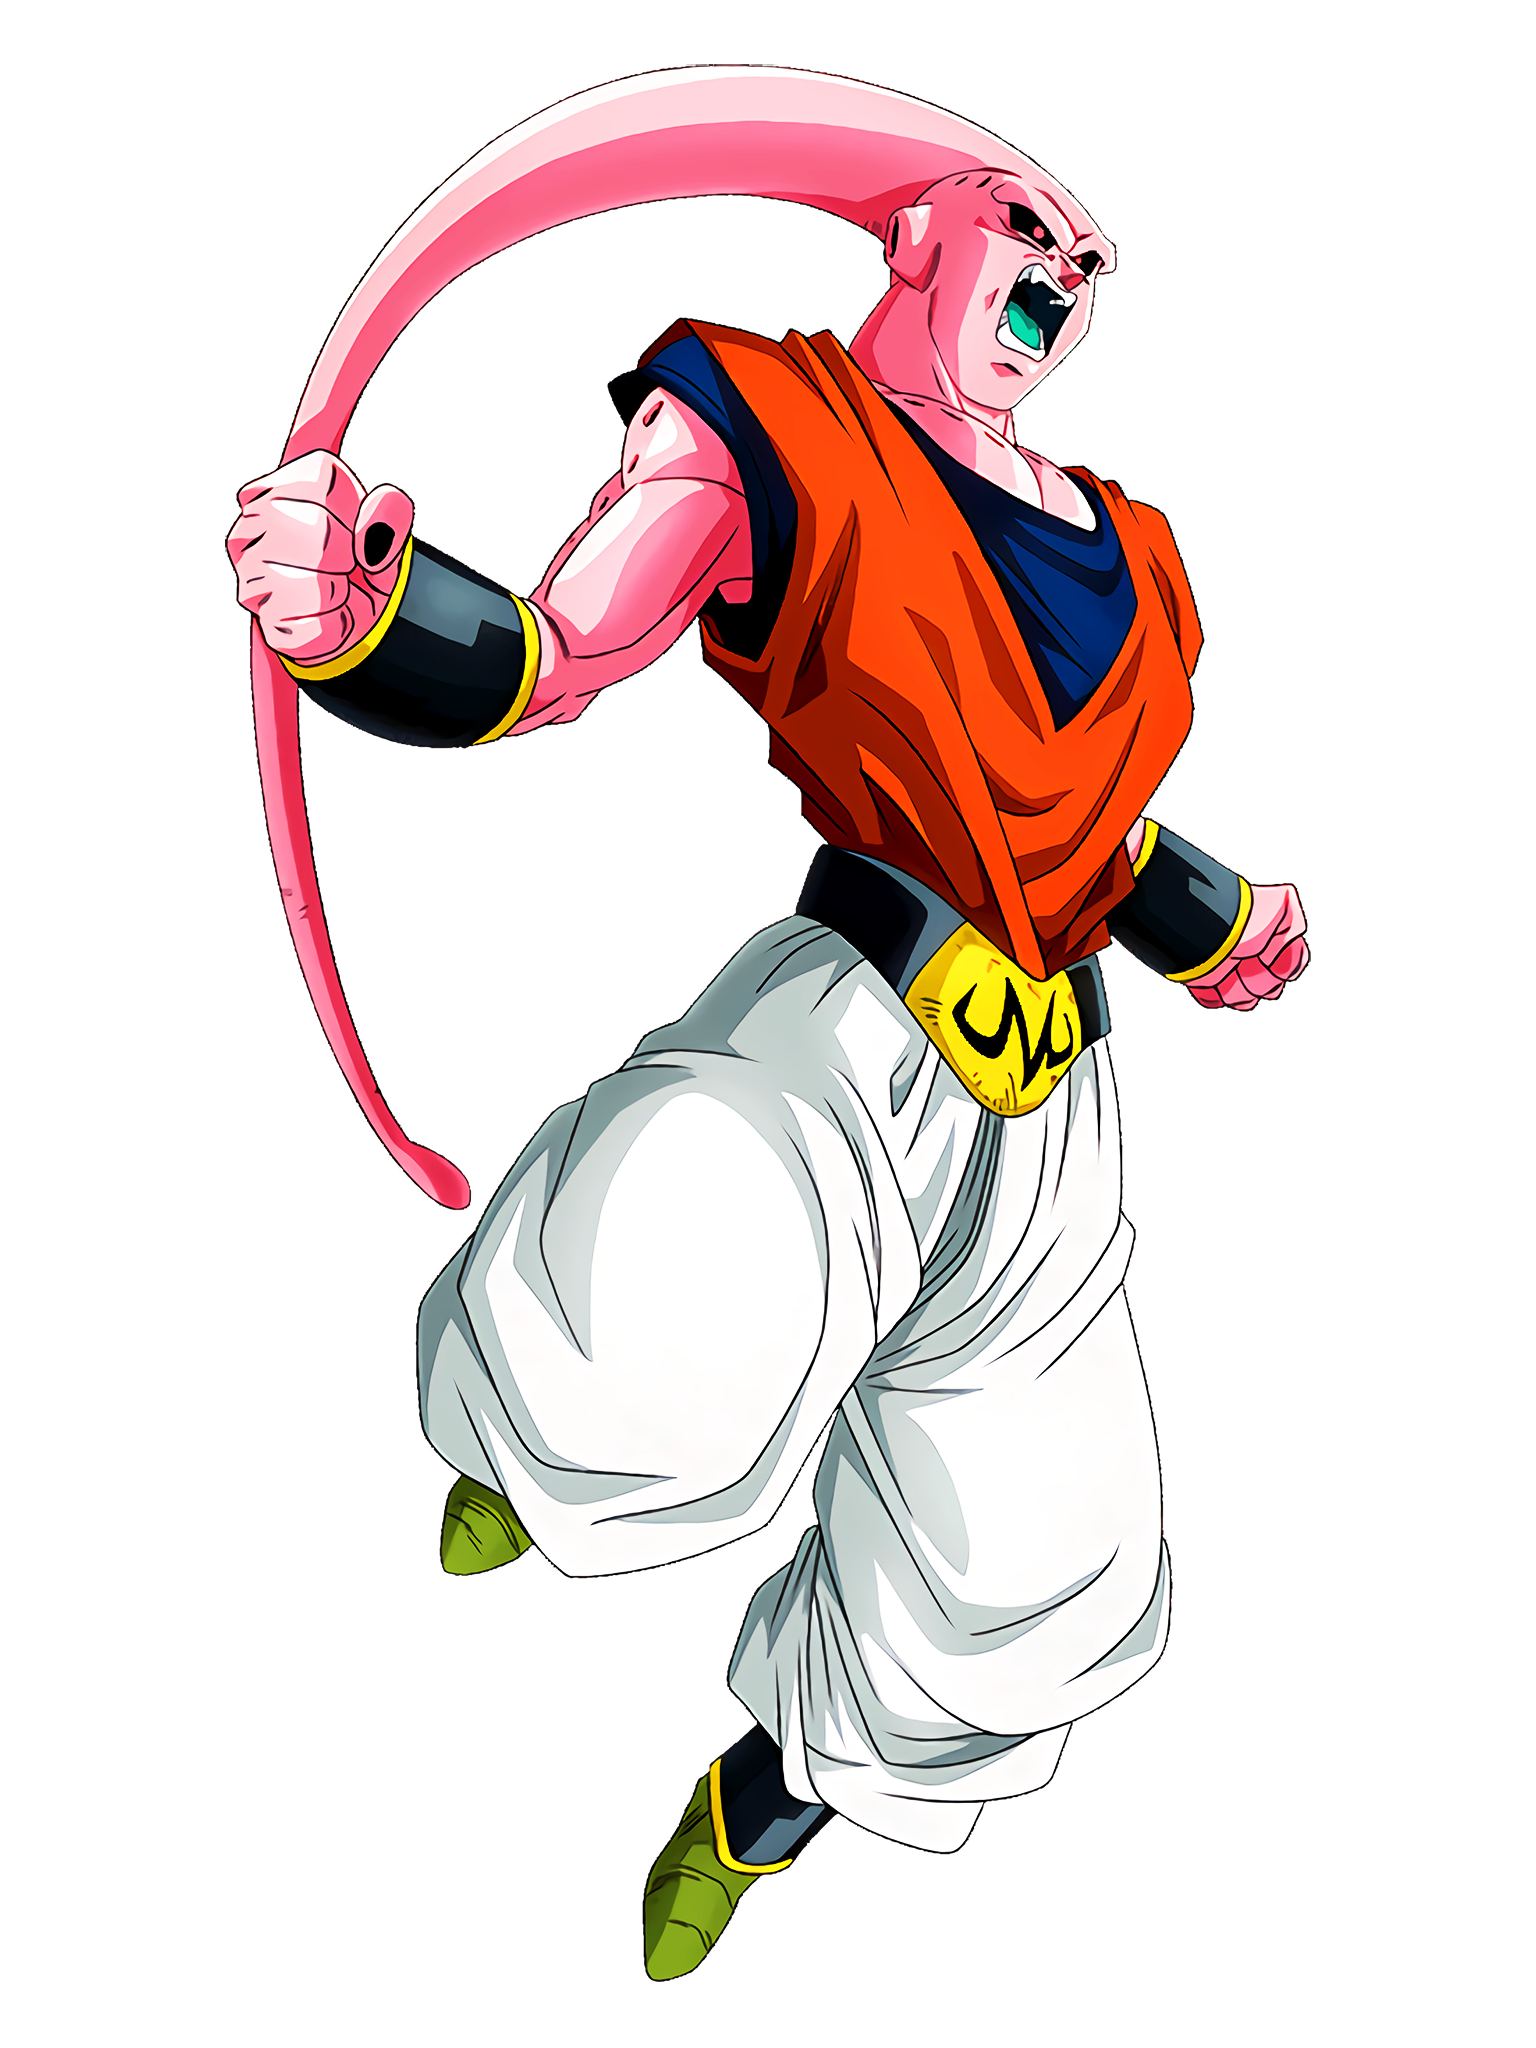 Amazing Absorption Capacity Buu Ultimate Gohan Absorbed Character 2 Render (Dragon Ball Z Dokkan Battle) .png